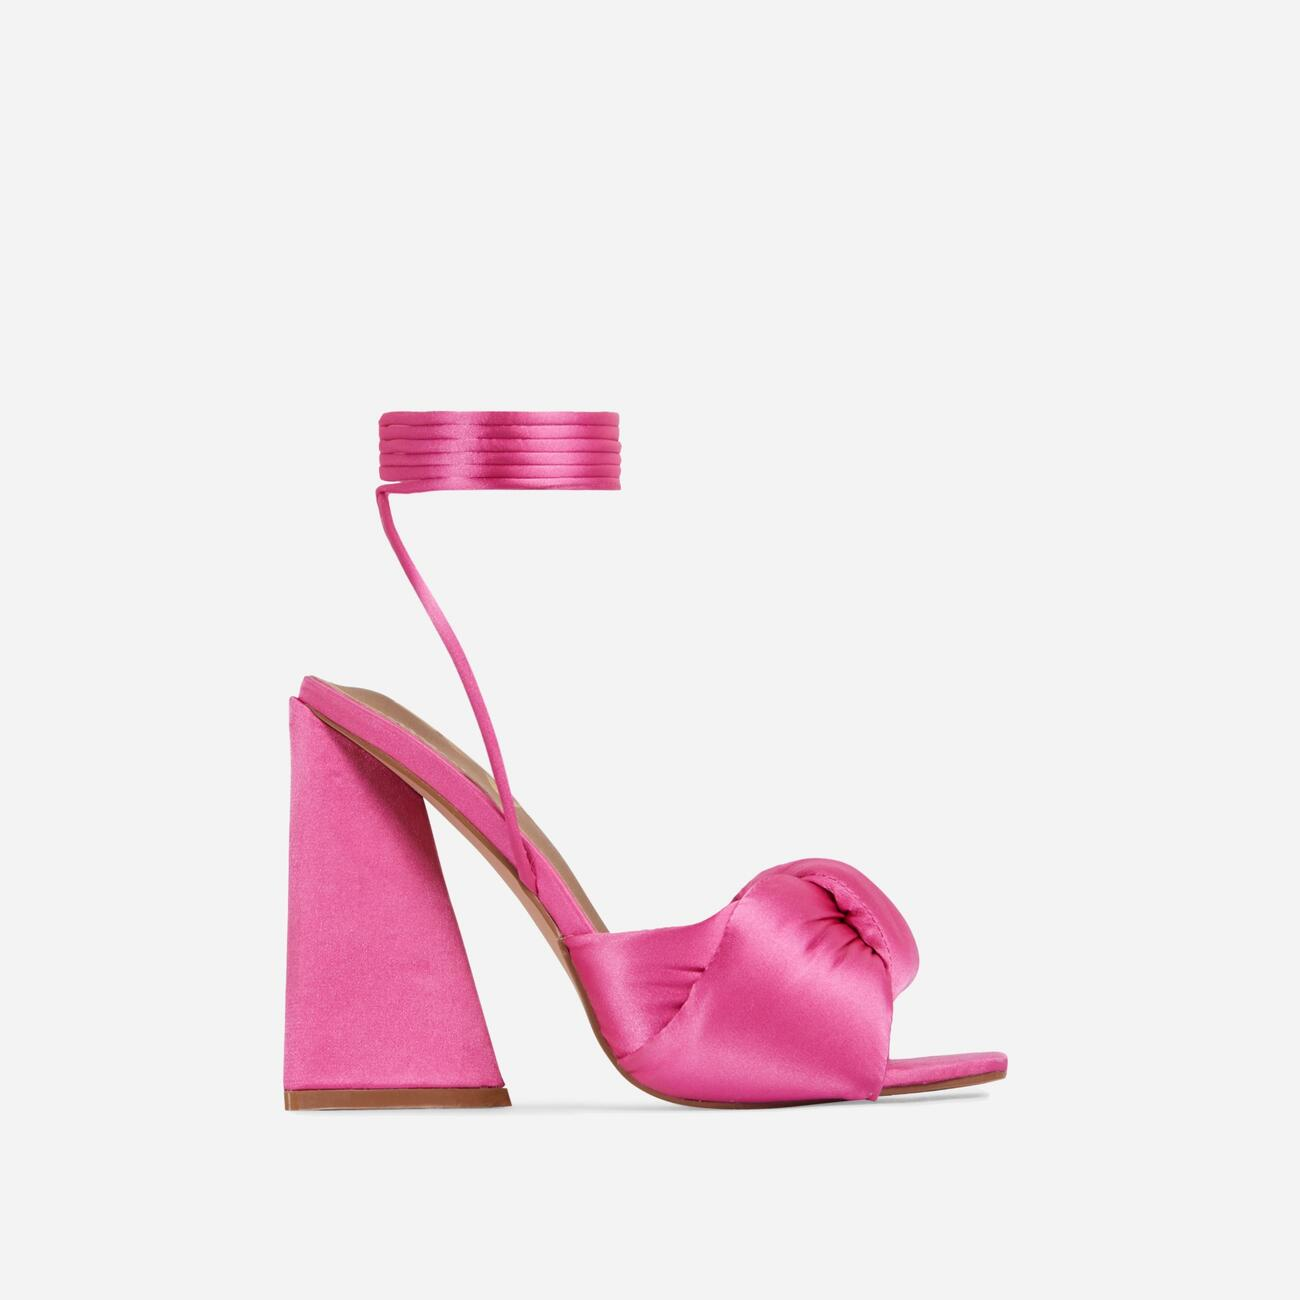 Cushy Knotted Detail Lace Up Square Peep Toe Sculptured Flared Block Heel In Fuchsia Pink Satin Image 1